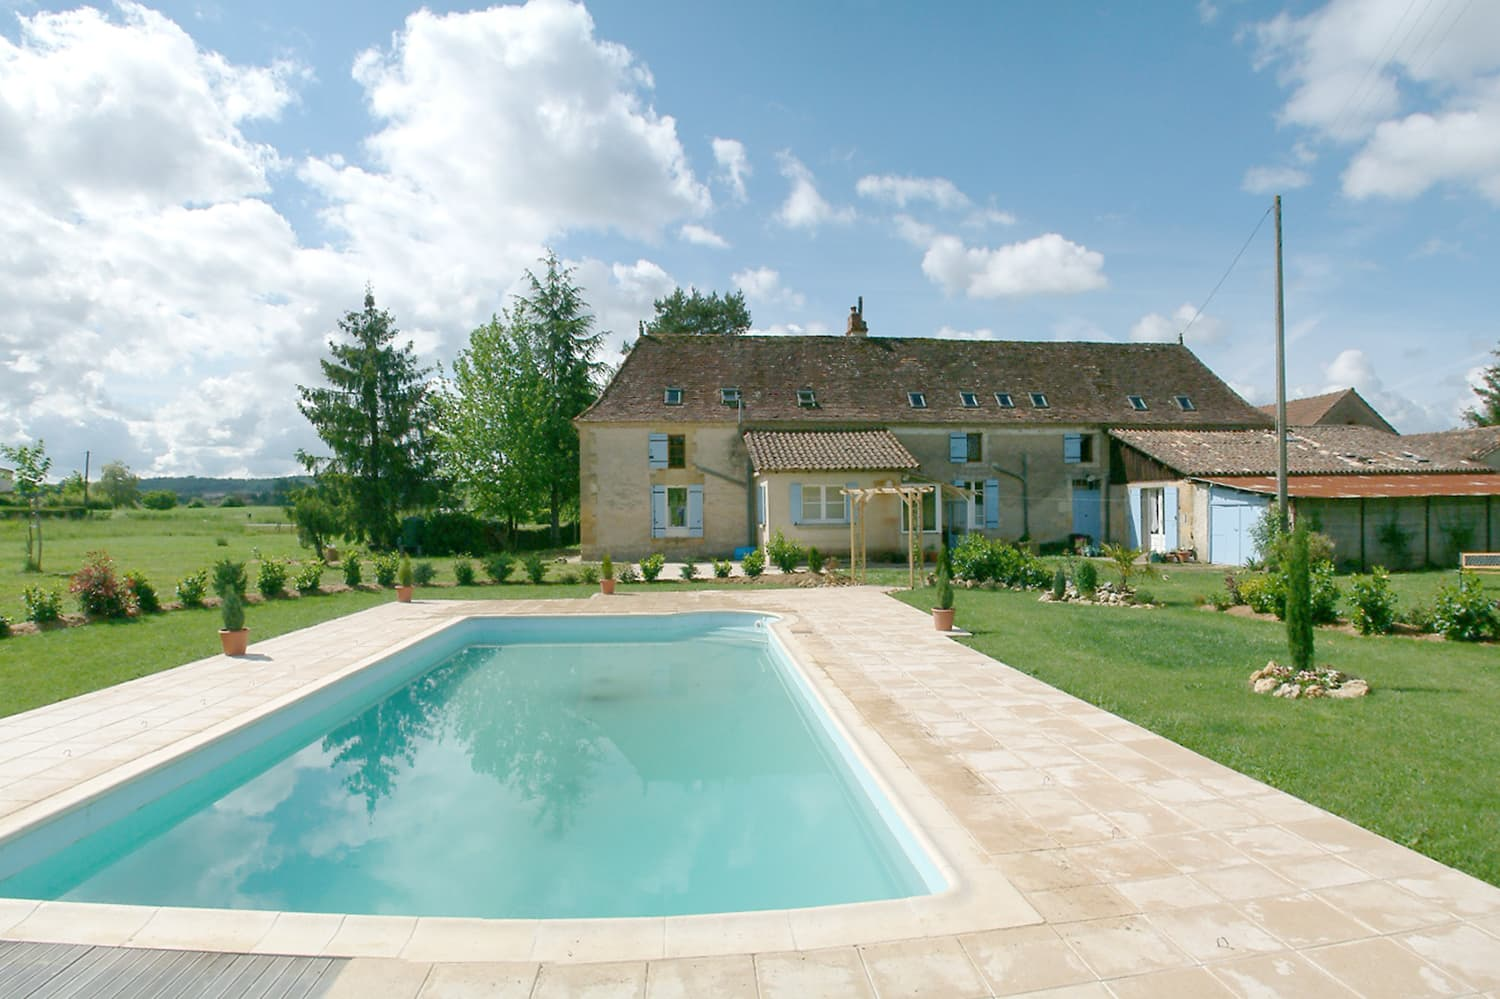 Dordogne holiday accommodation with private pool